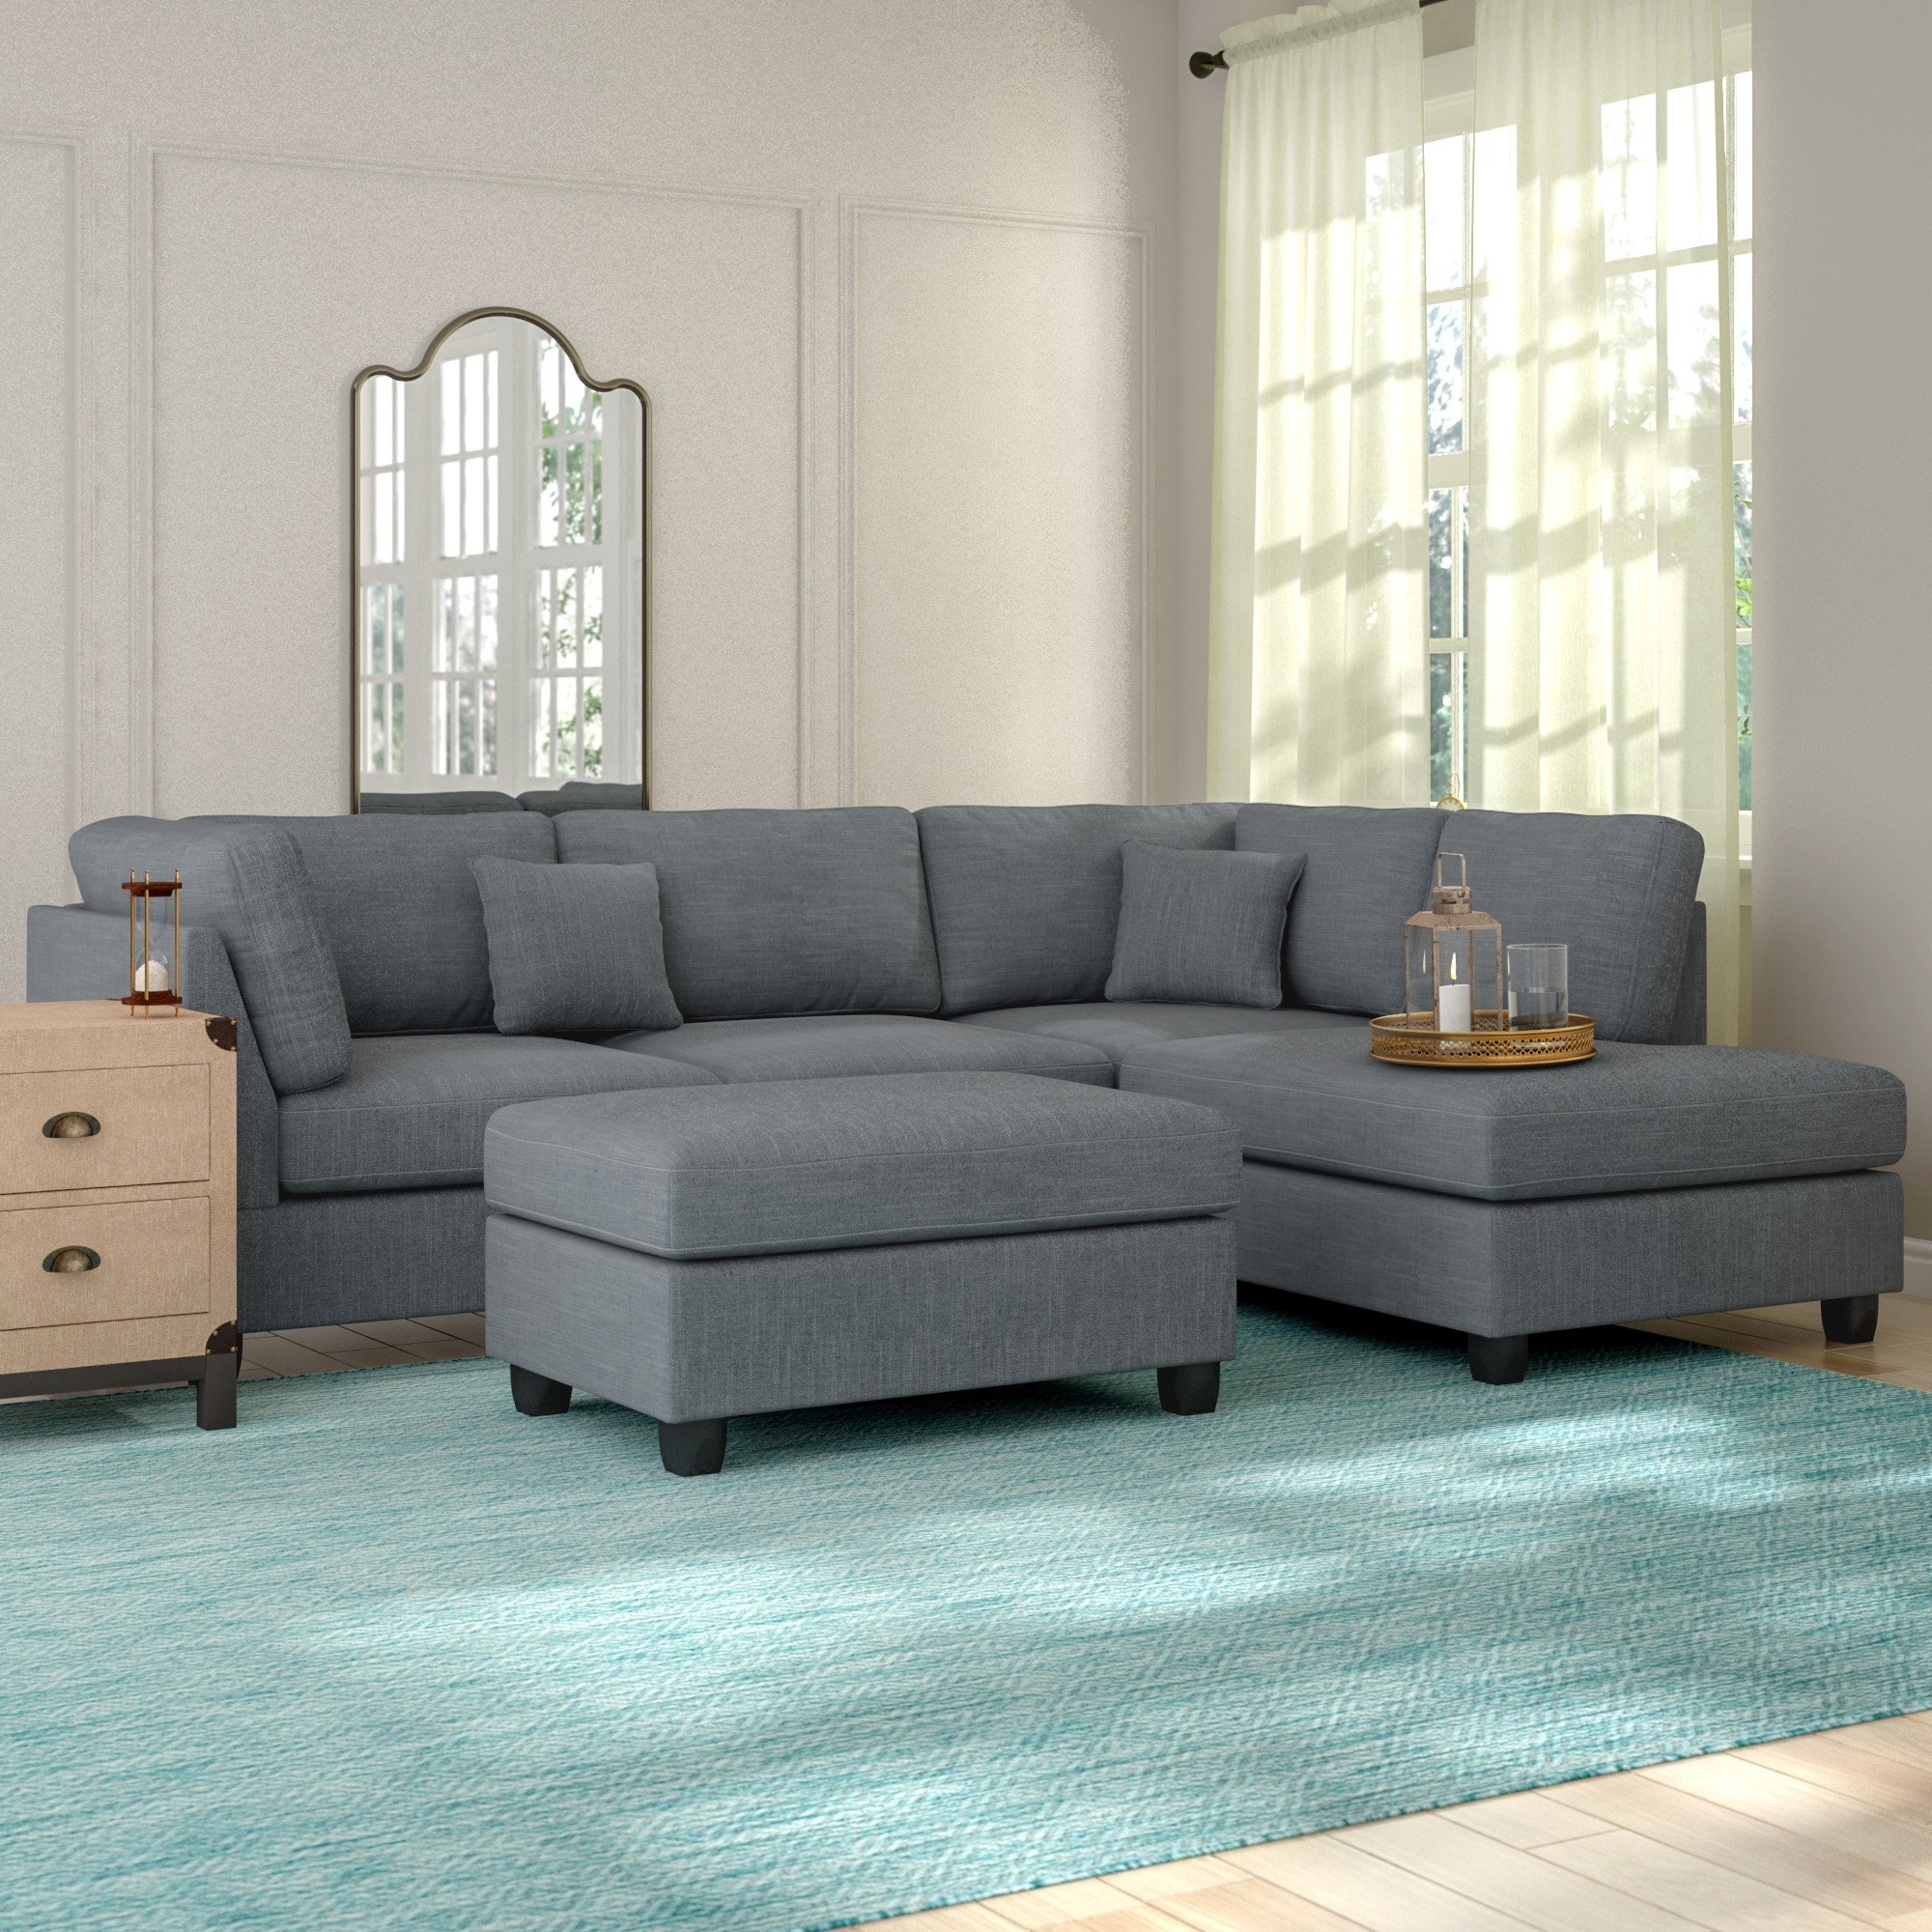 Gray Sectional Couch You'll Love (View 14 of 20)